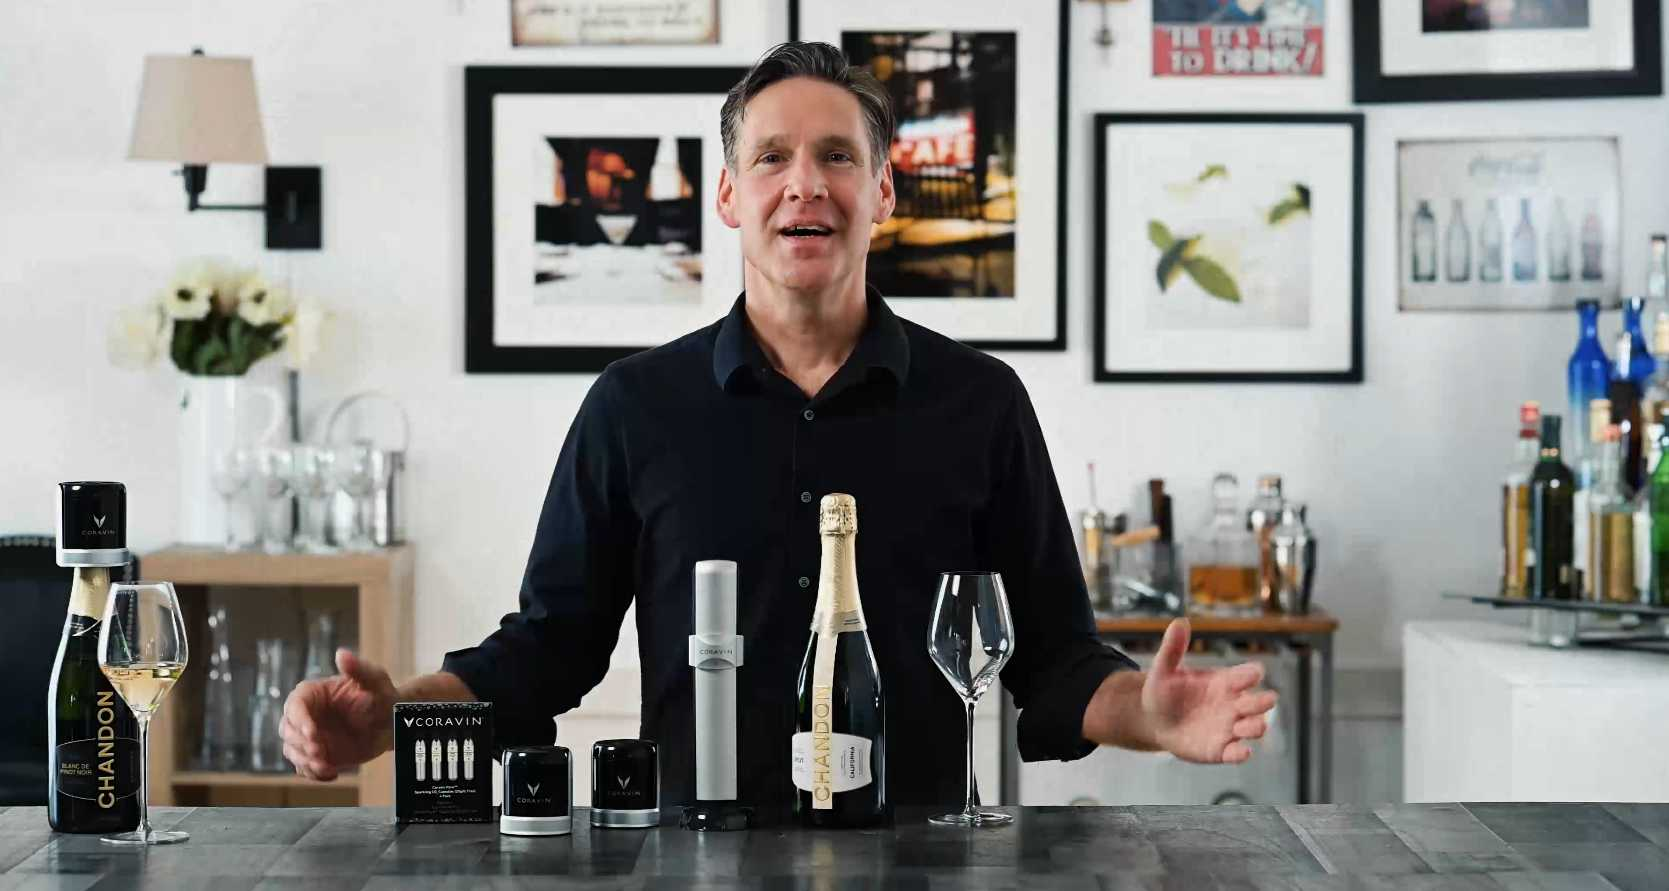 VID Greg How to Use Sparkling